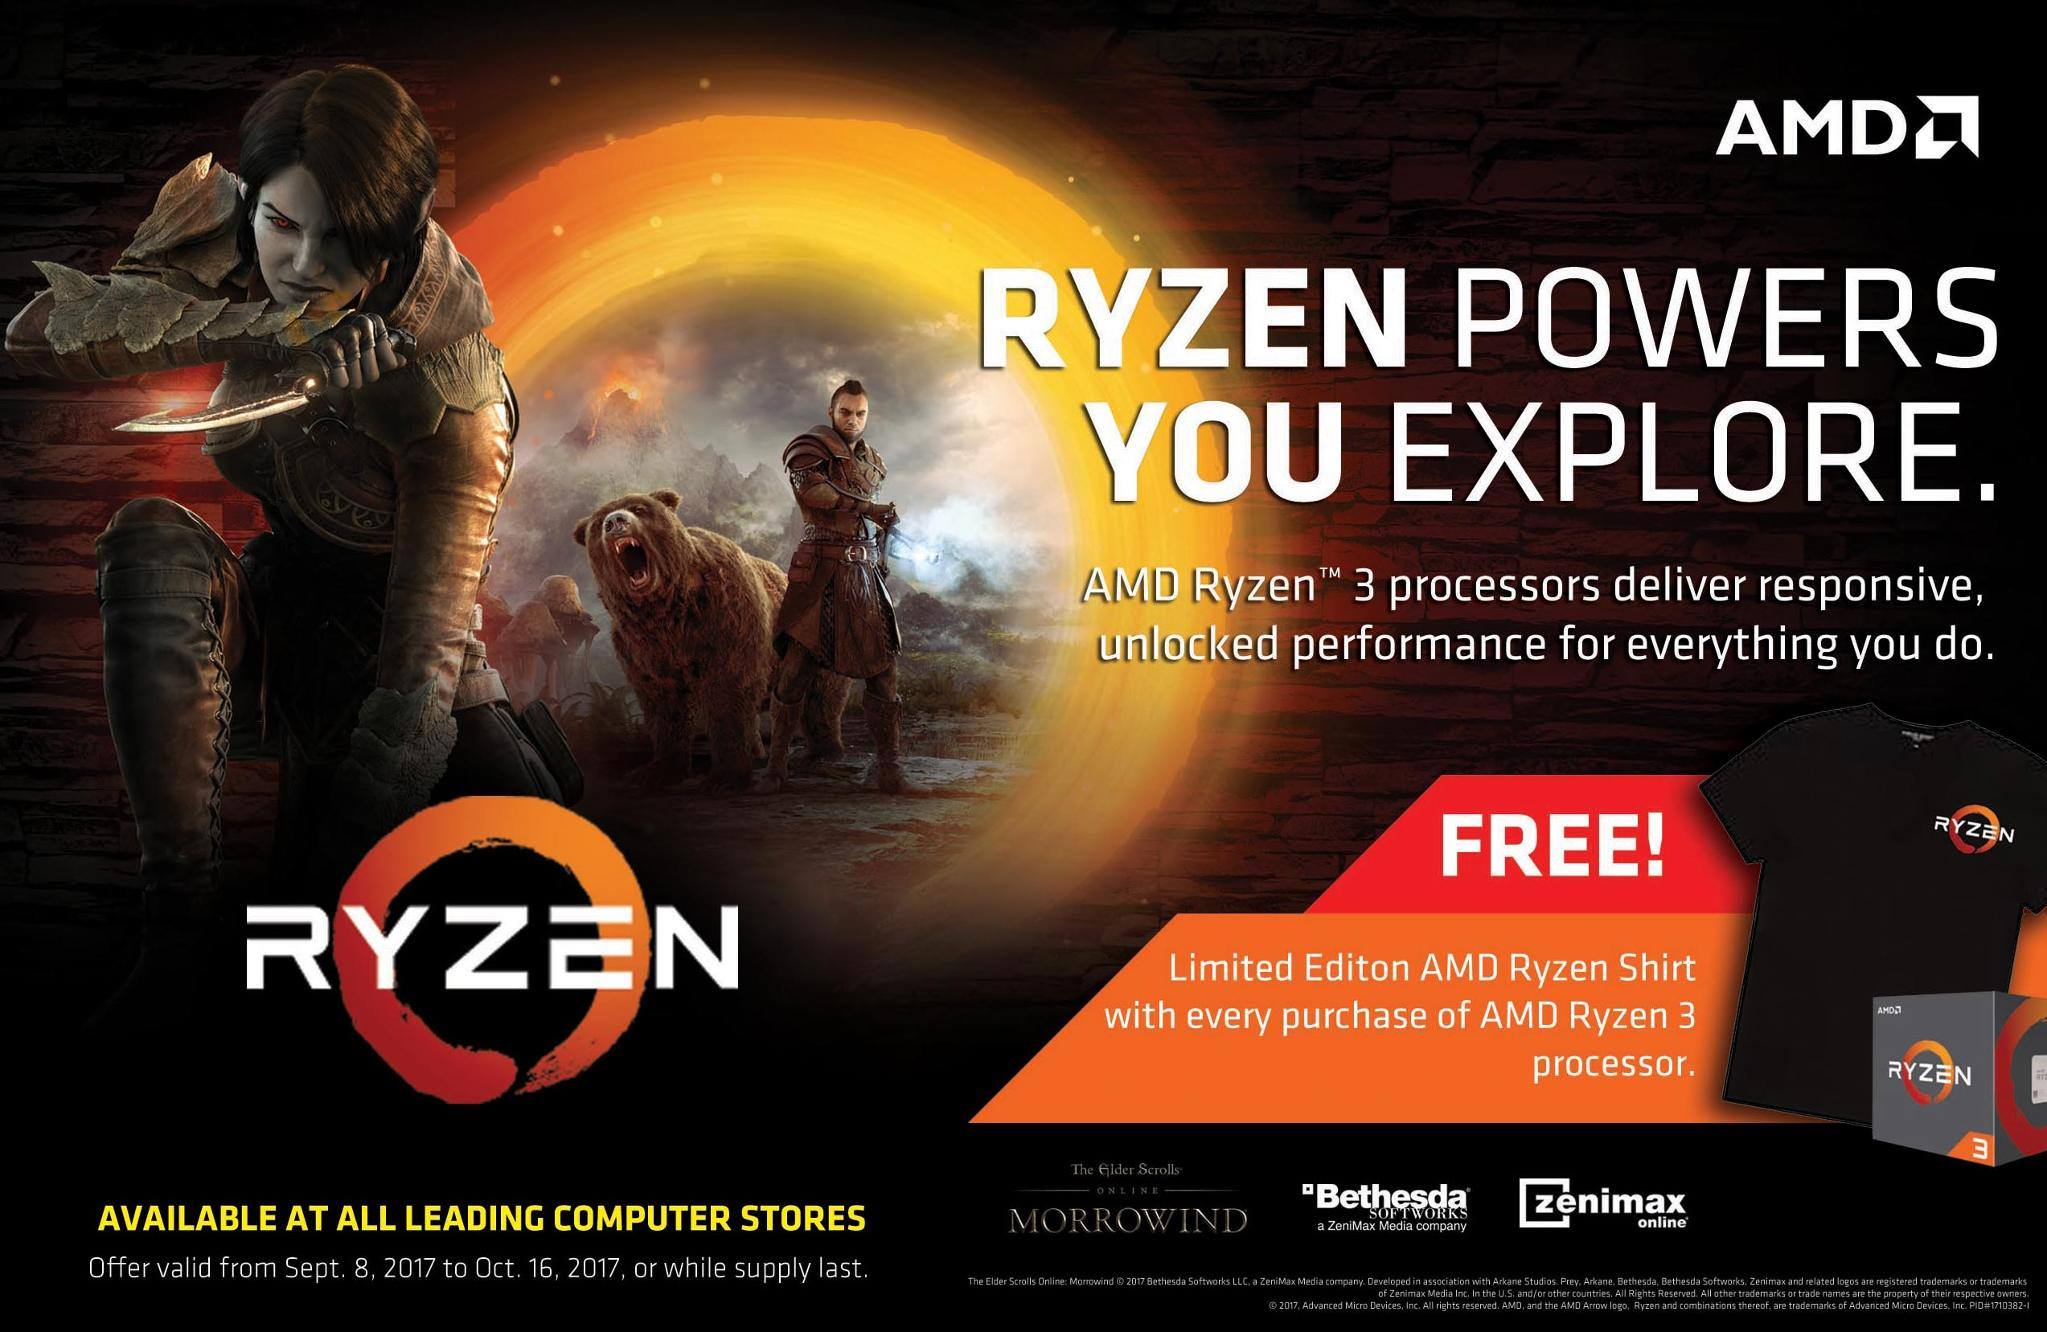 Get a FREE Ryzen Shirt for Every Purchase of an AMD Ryzen 3 Processor!